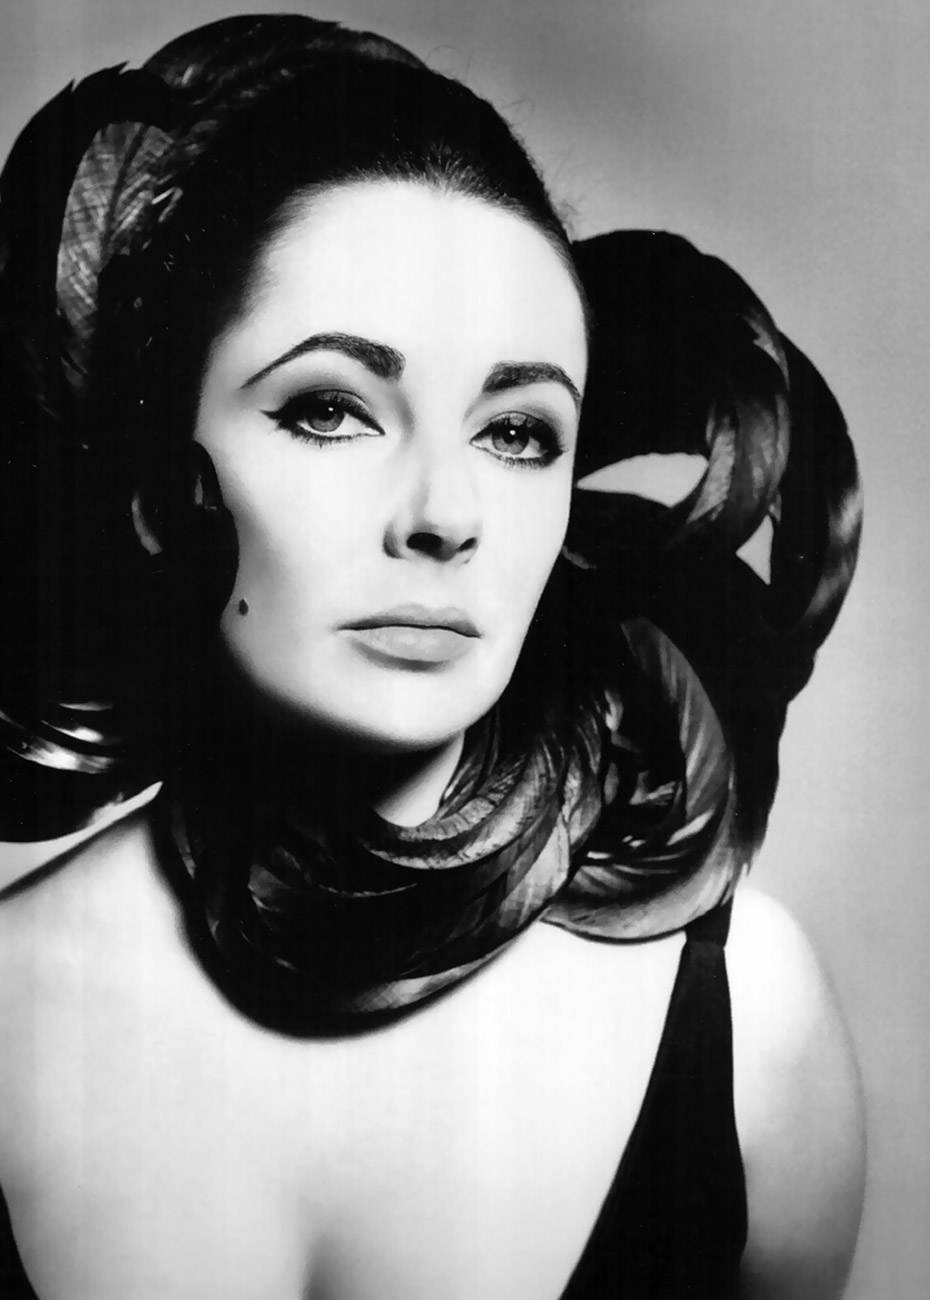 elizabeth-taylor-ny-1964-photo-richard-avedon